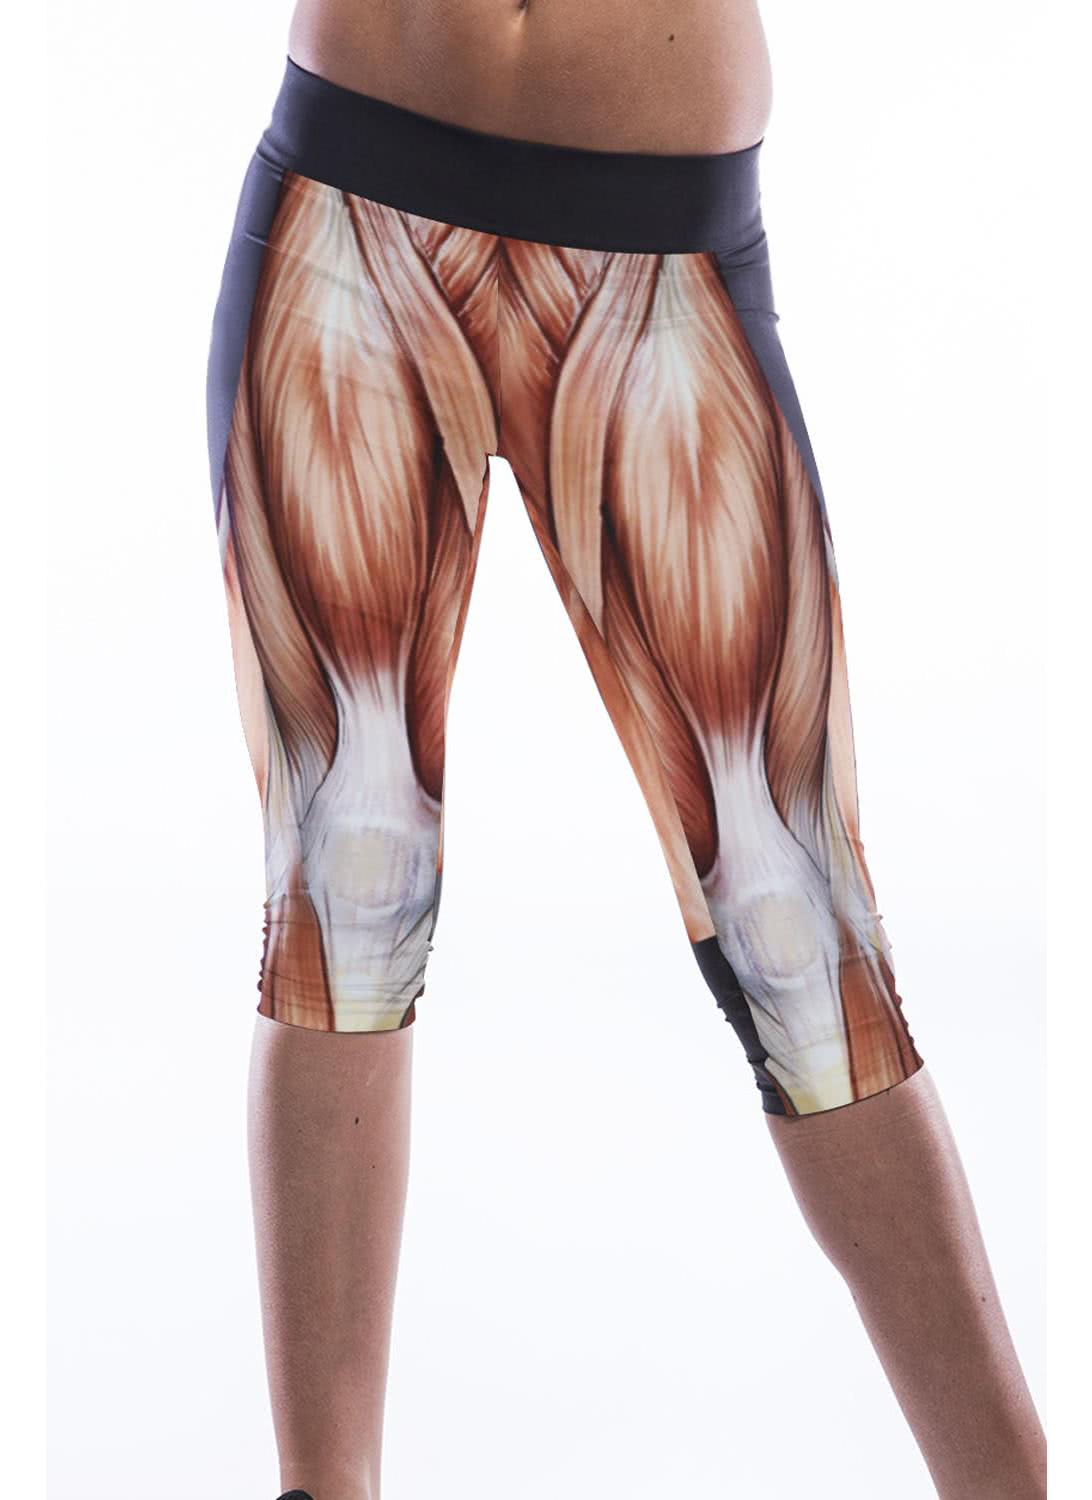 Muscle Leggings. WAS $ NOW $ Ships by next day! Order within. Size. Size: Please select a Workout much? Showcase your muscles in these comfortable muscle print leggings that you can take to the gym and beyond! Each fabric panel of our clothing is printed with the graphics before sewing to ensure the design is flawless and.